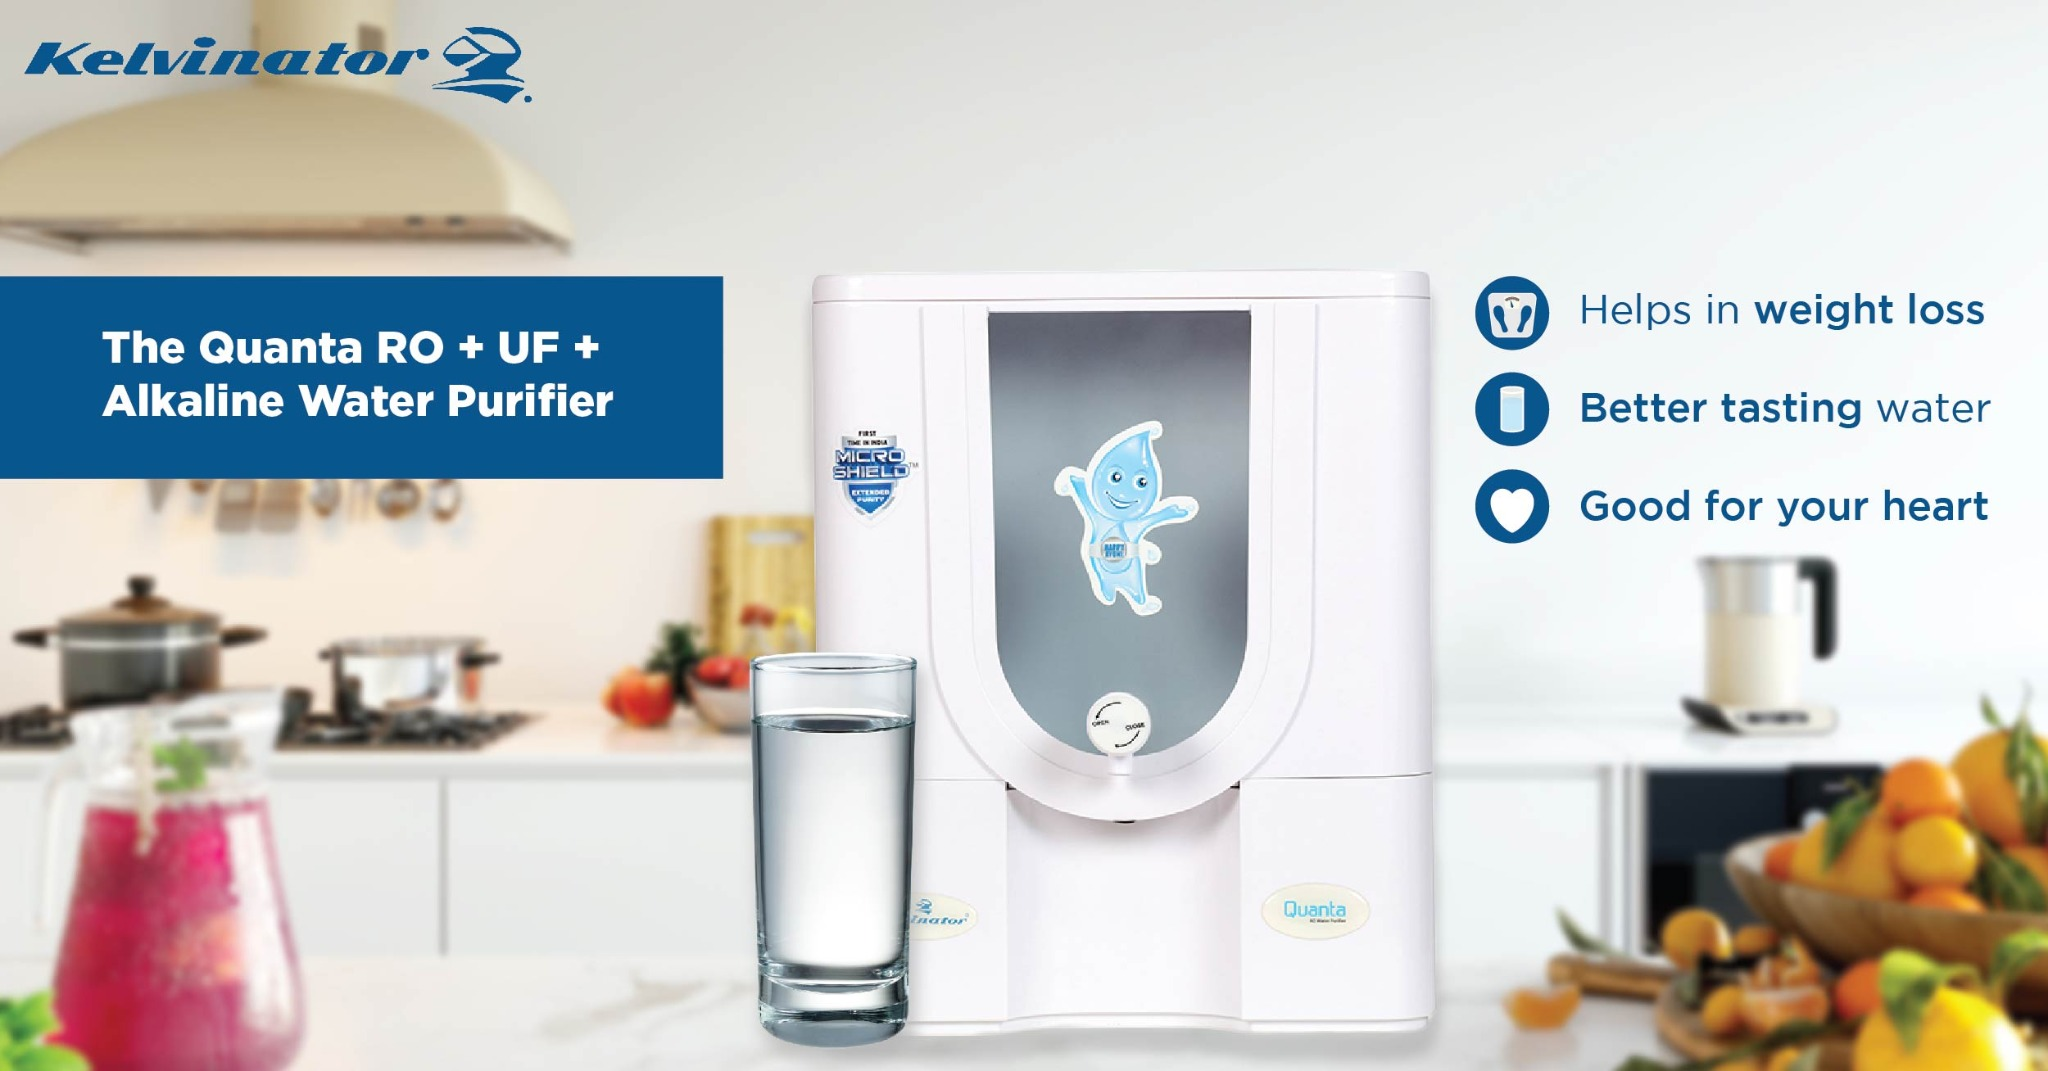 3 Things You Need to Consider Before Buying a Water Purifier in India